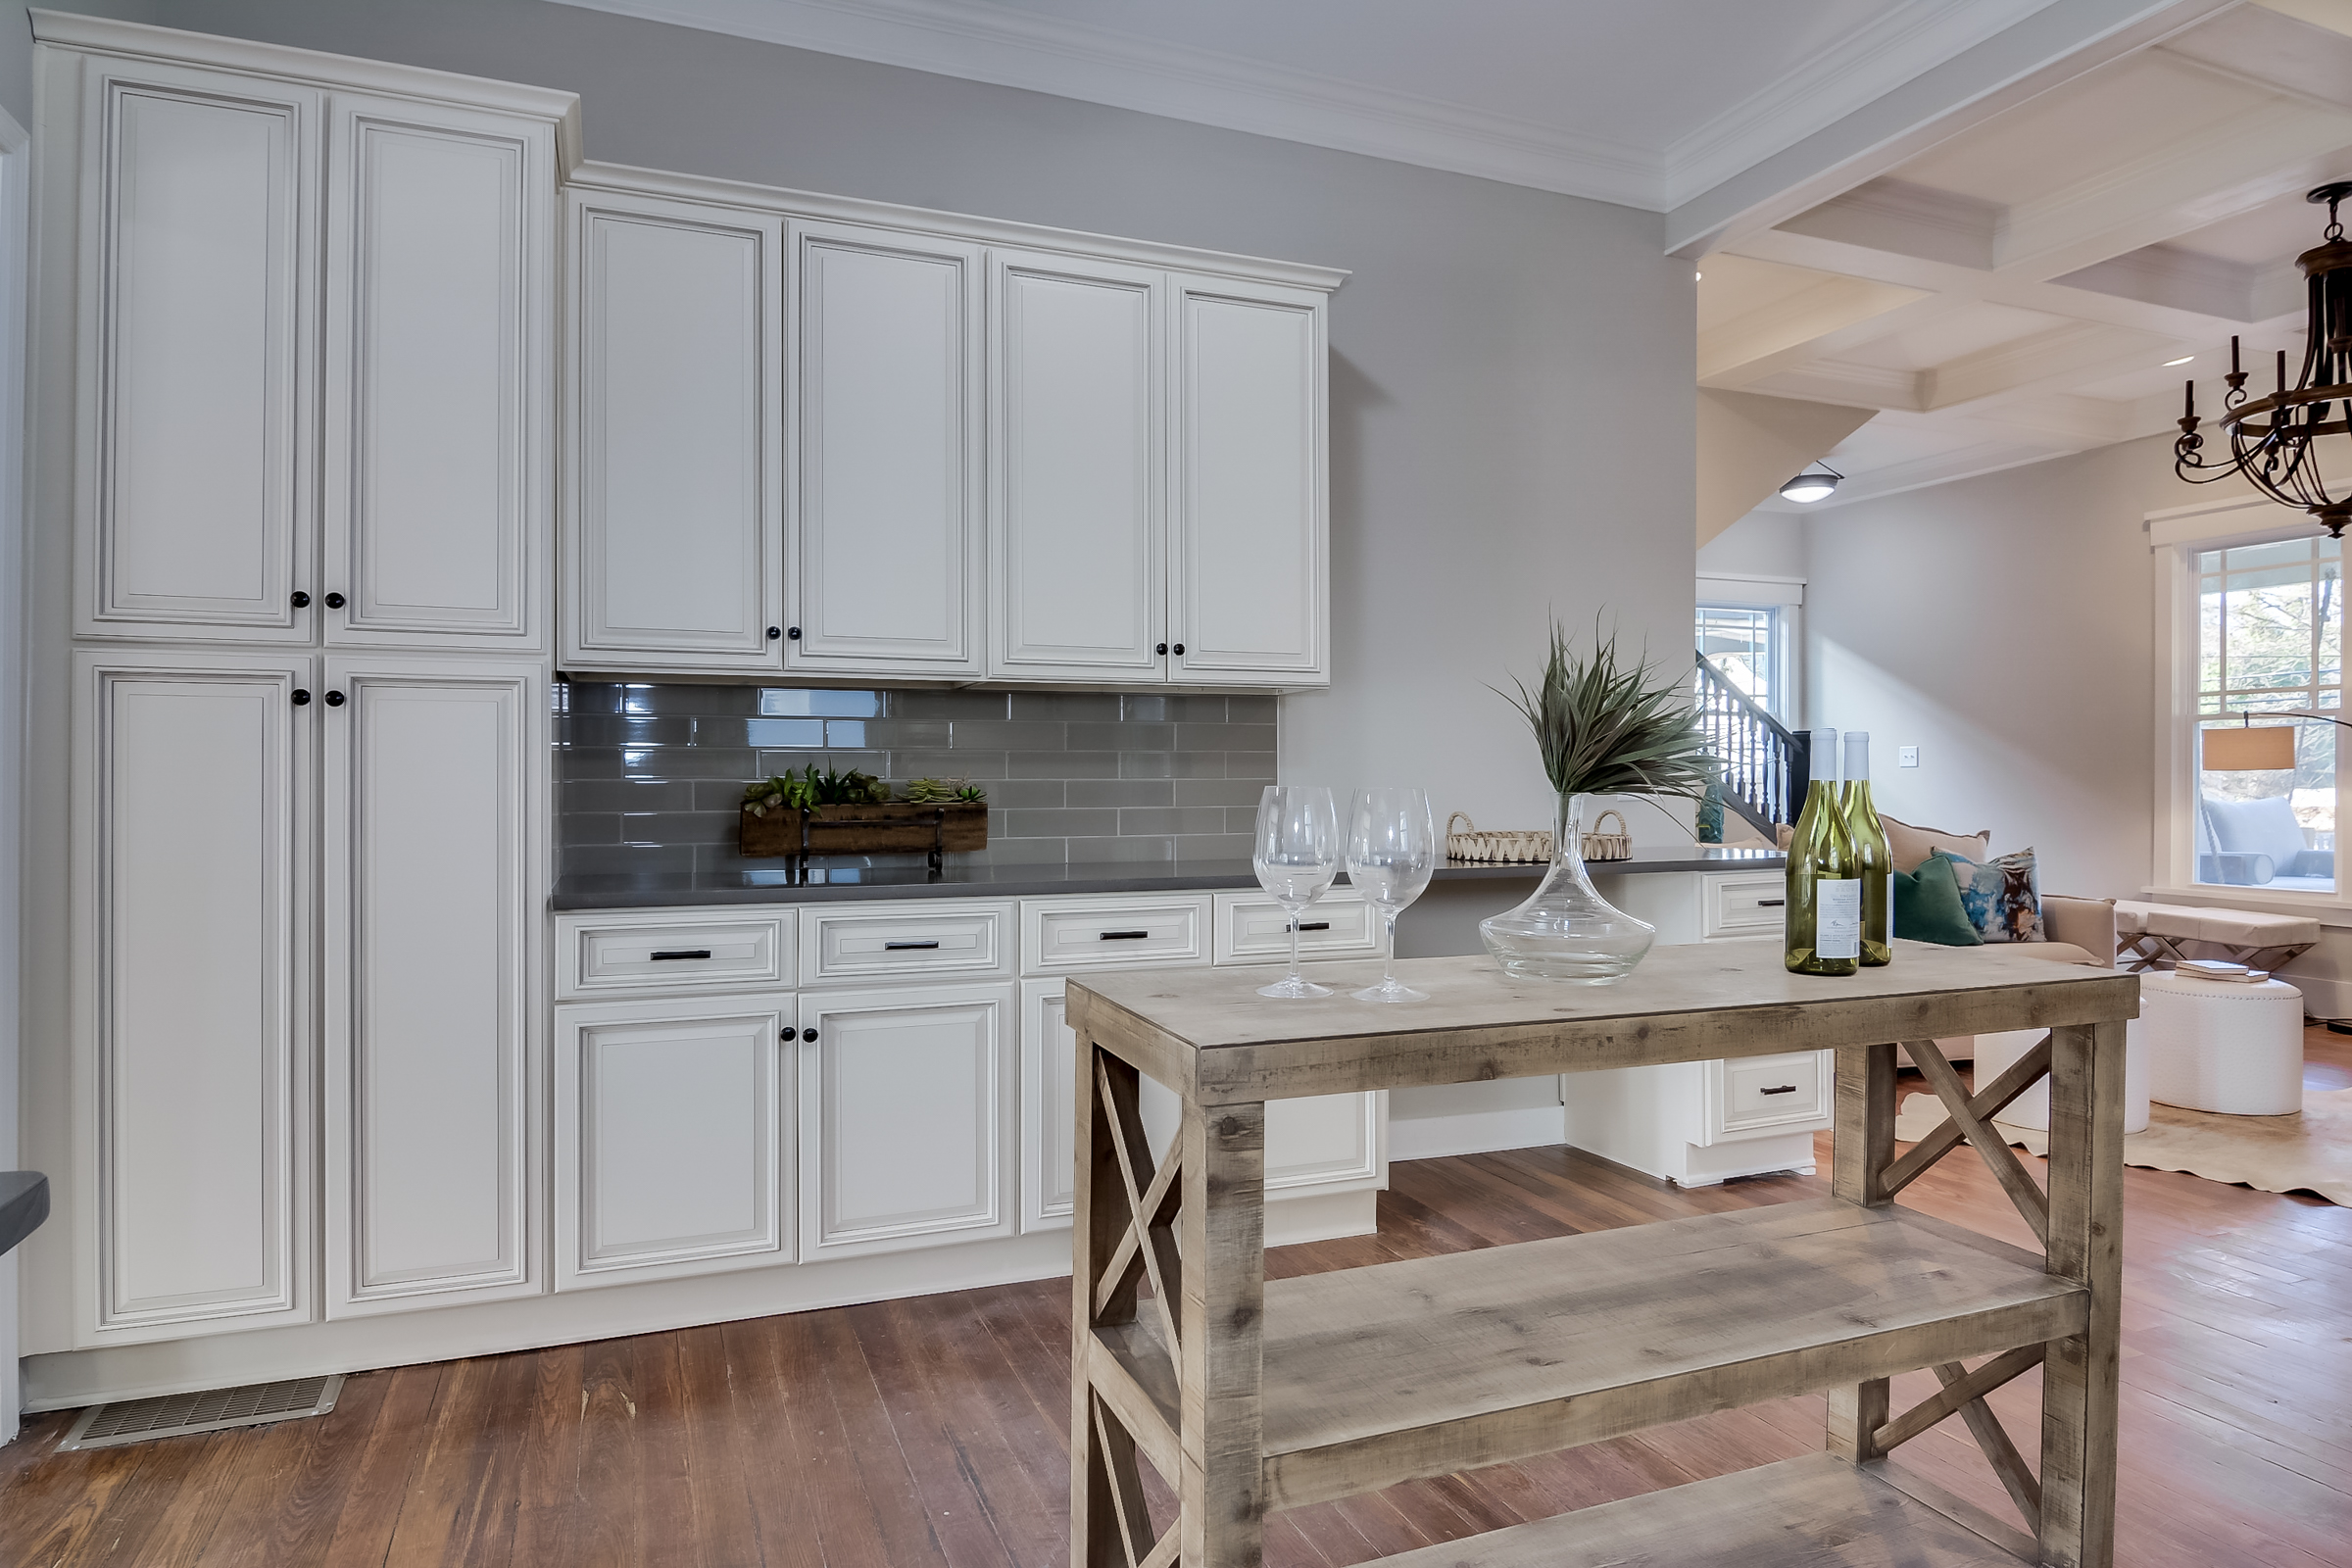 Cabinets: Forevermark Cabinetry, Lighting: Savoy House, Kitchen Sink/Faucet: Kohler